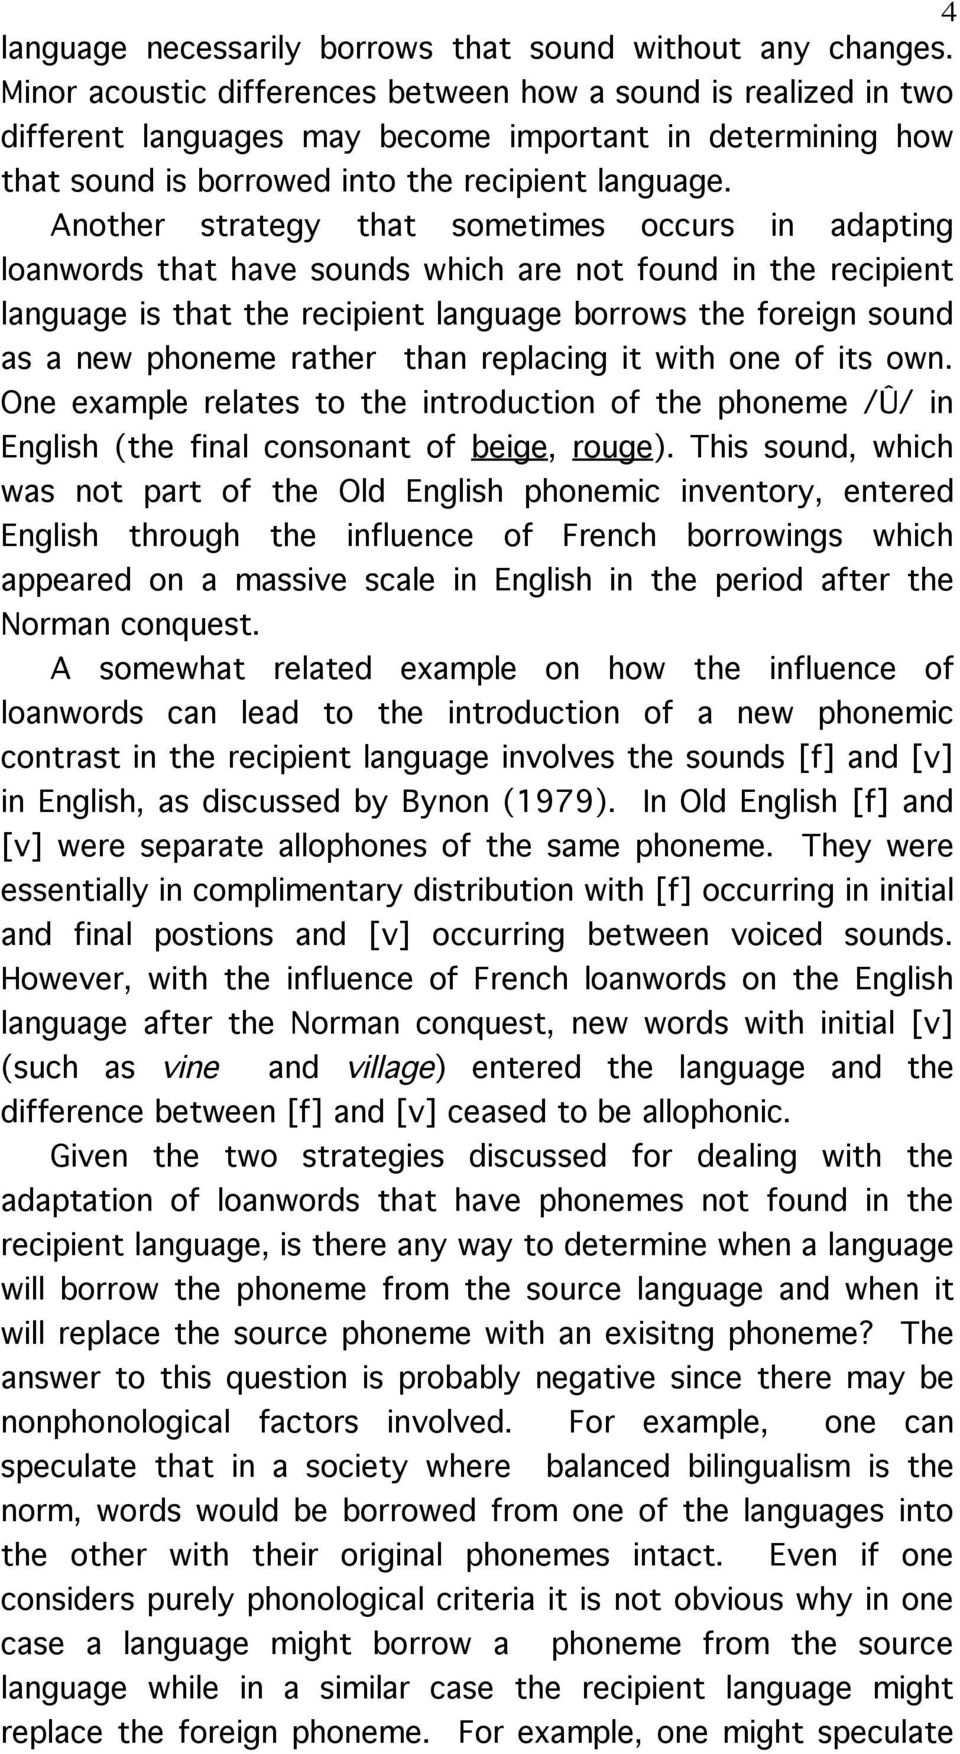 Another strategy that sometimes occurs in adapting loanwords that have sounds which are not found in the recipient language is that the recipient language borrows the foreign sound as a new phoneme